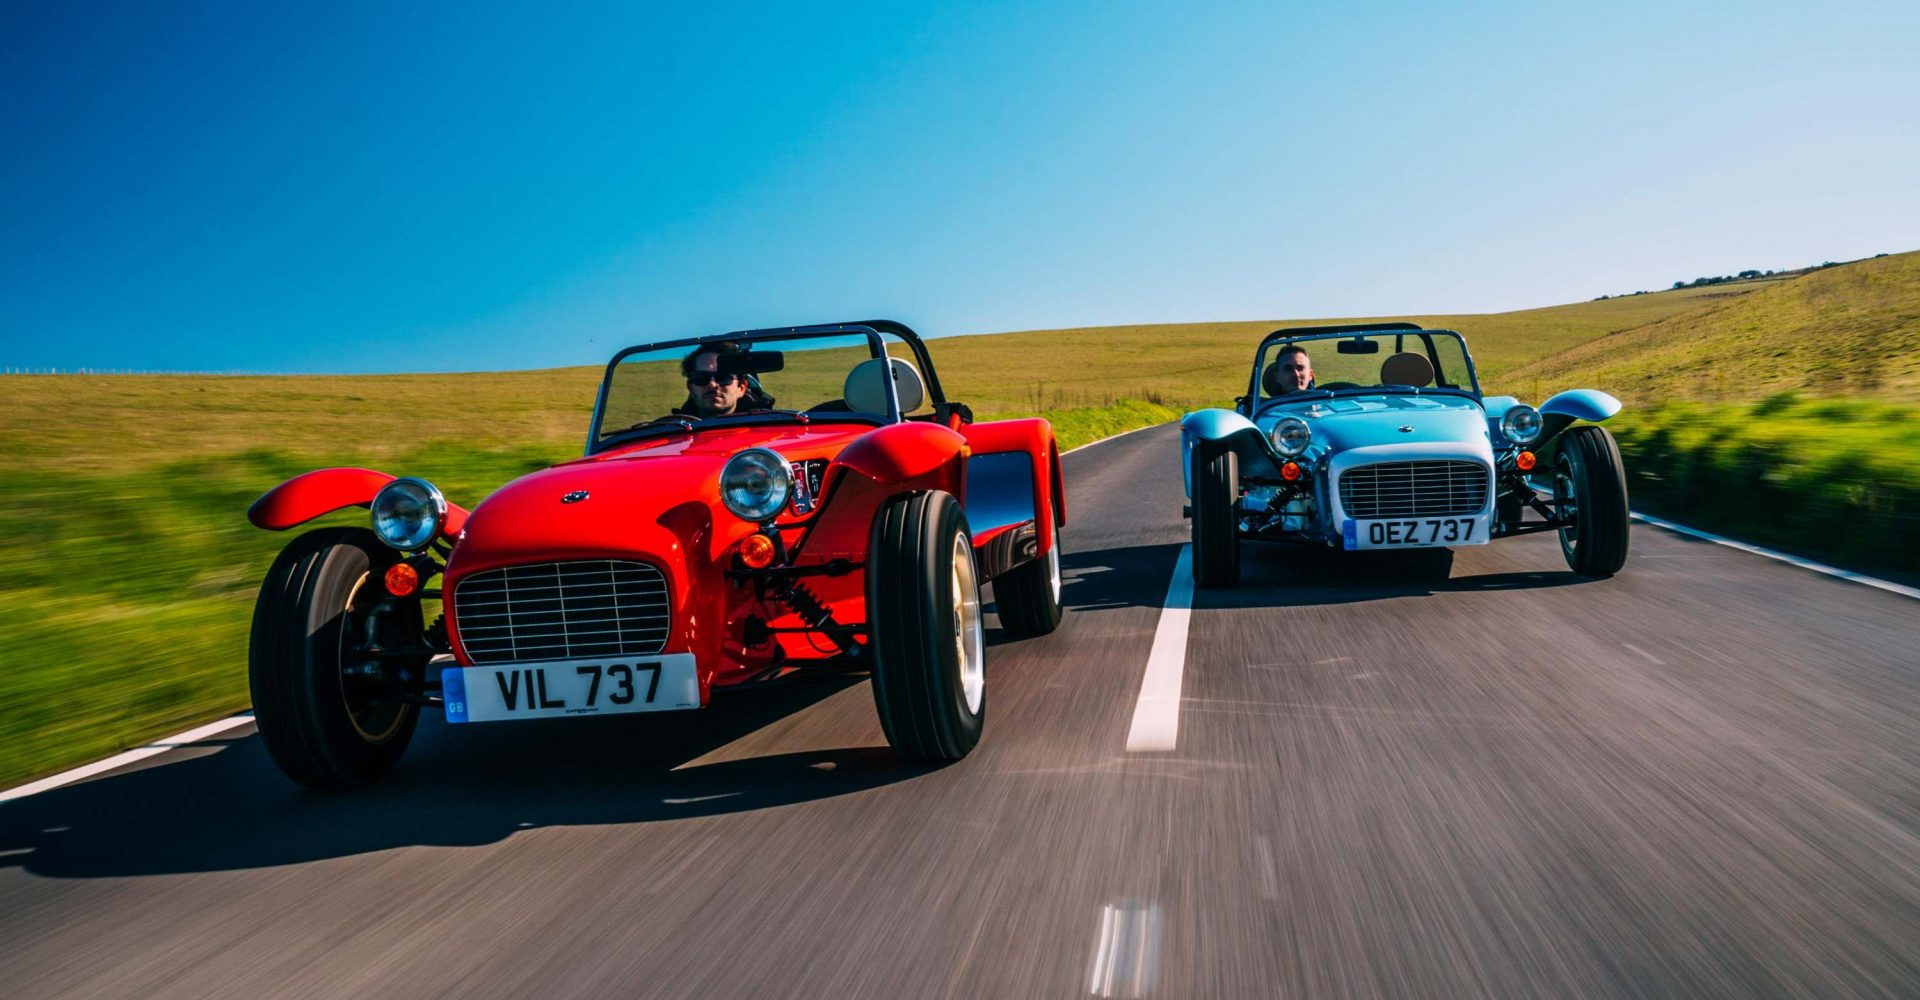 Caterham Cars bought by Japan-based VT Holdings